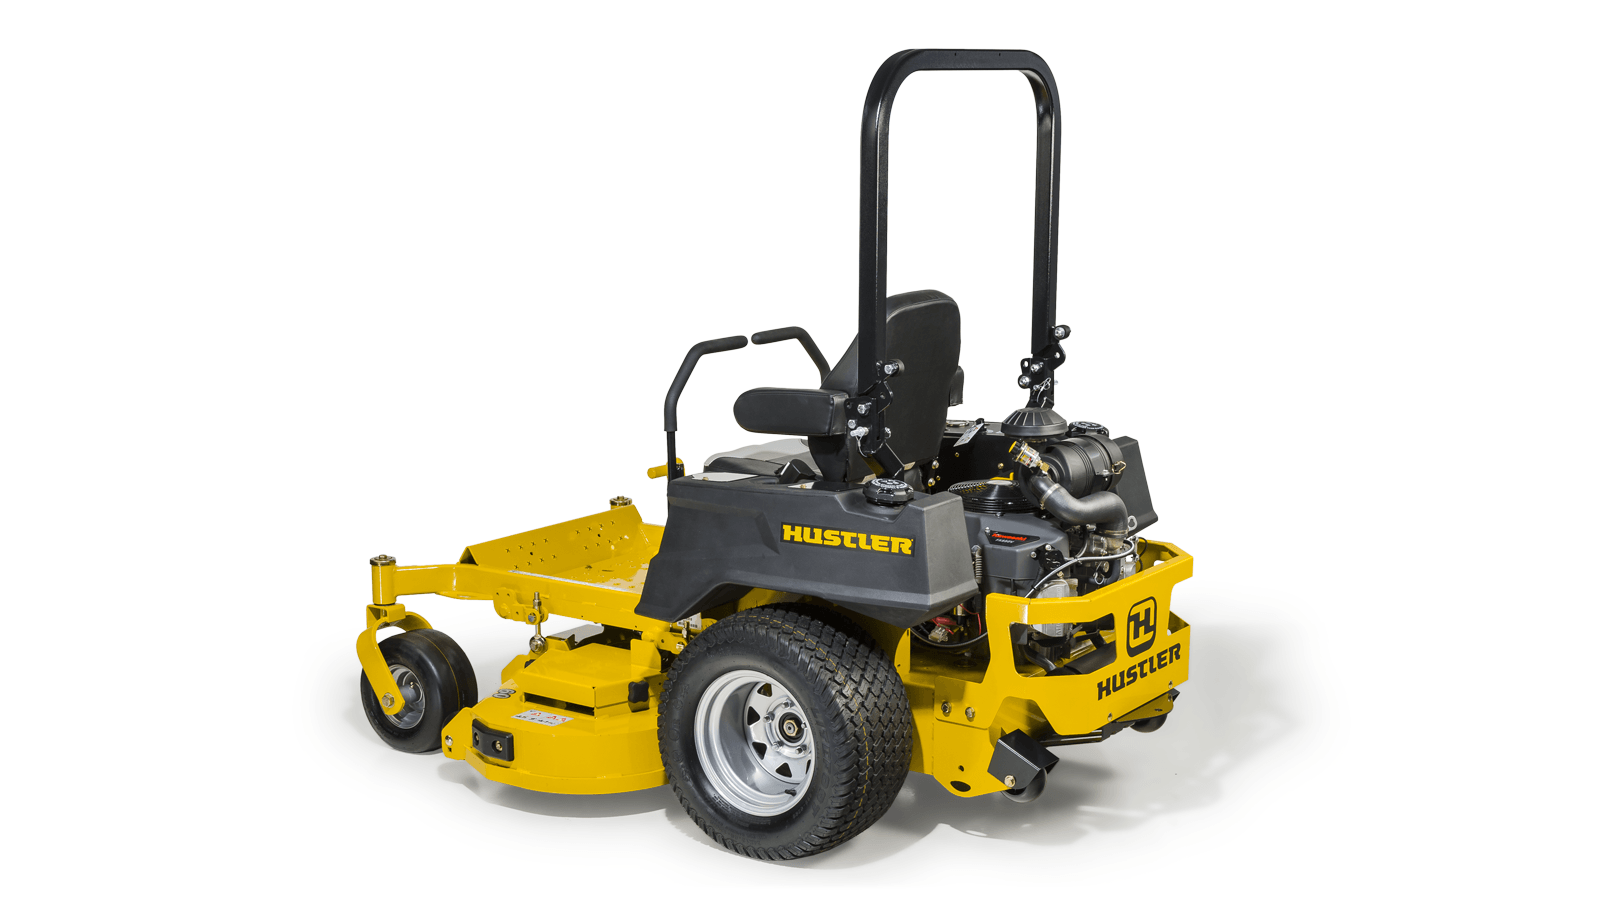 Hustler 802d 6 wheel mower confirm